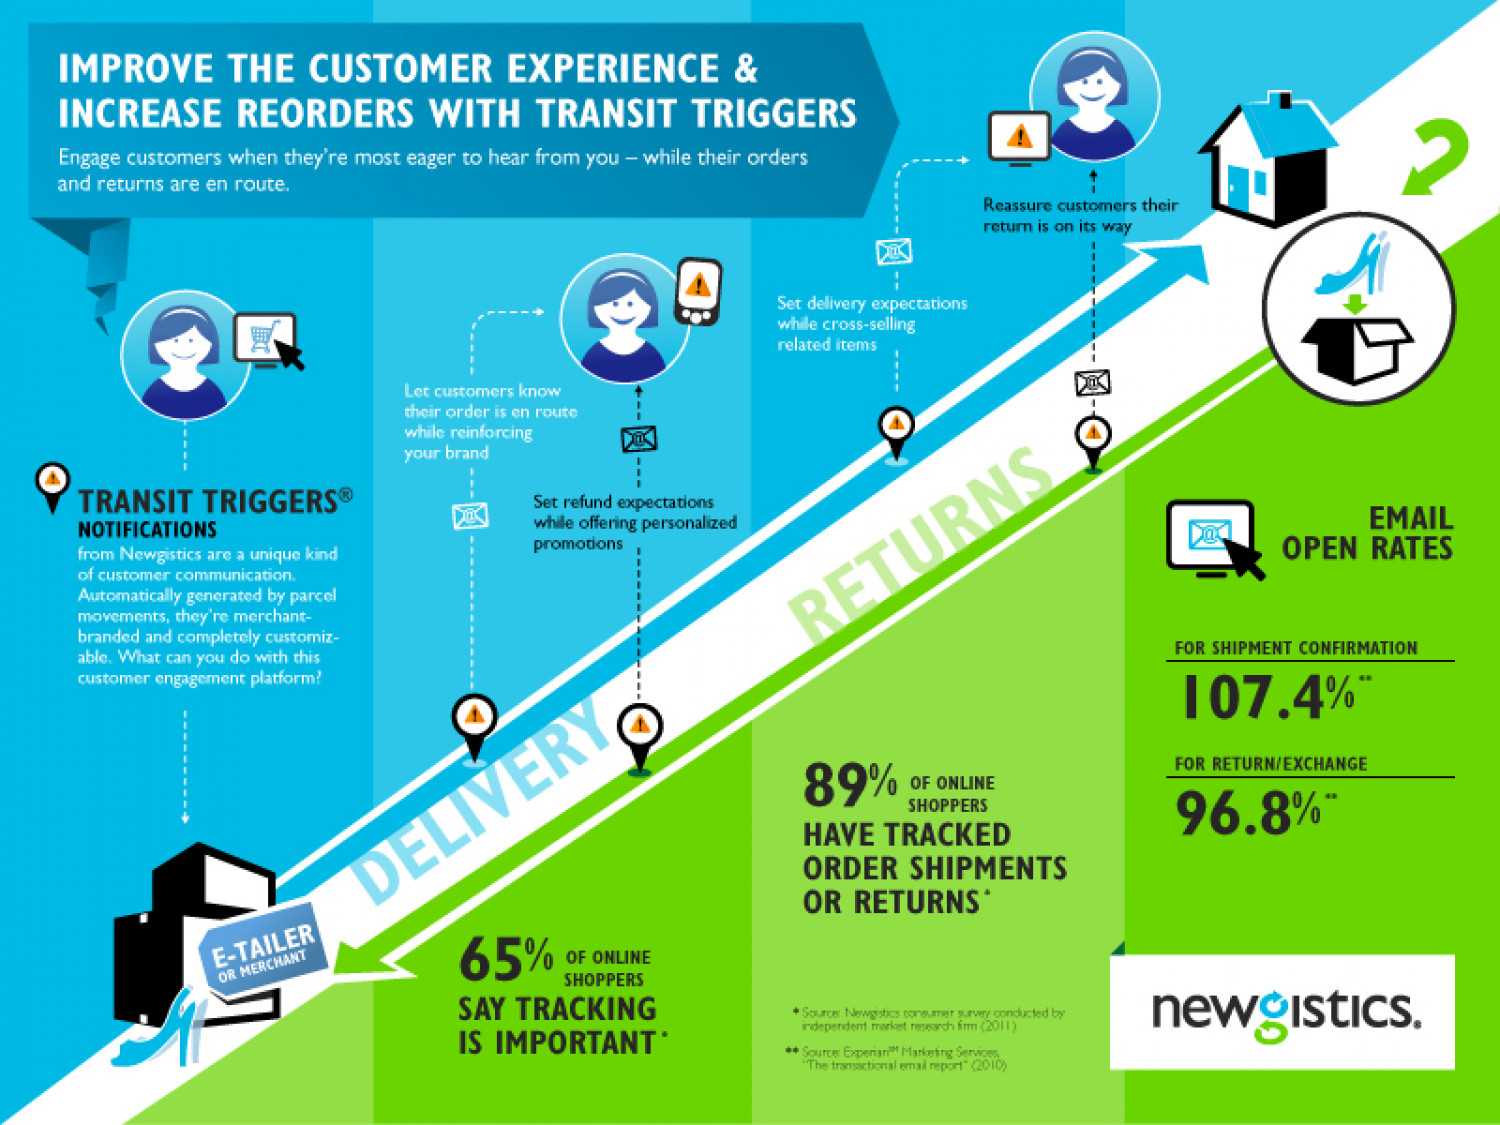 Improve the Customer Experience & Increase Reorders with Transit Triggers Infographic